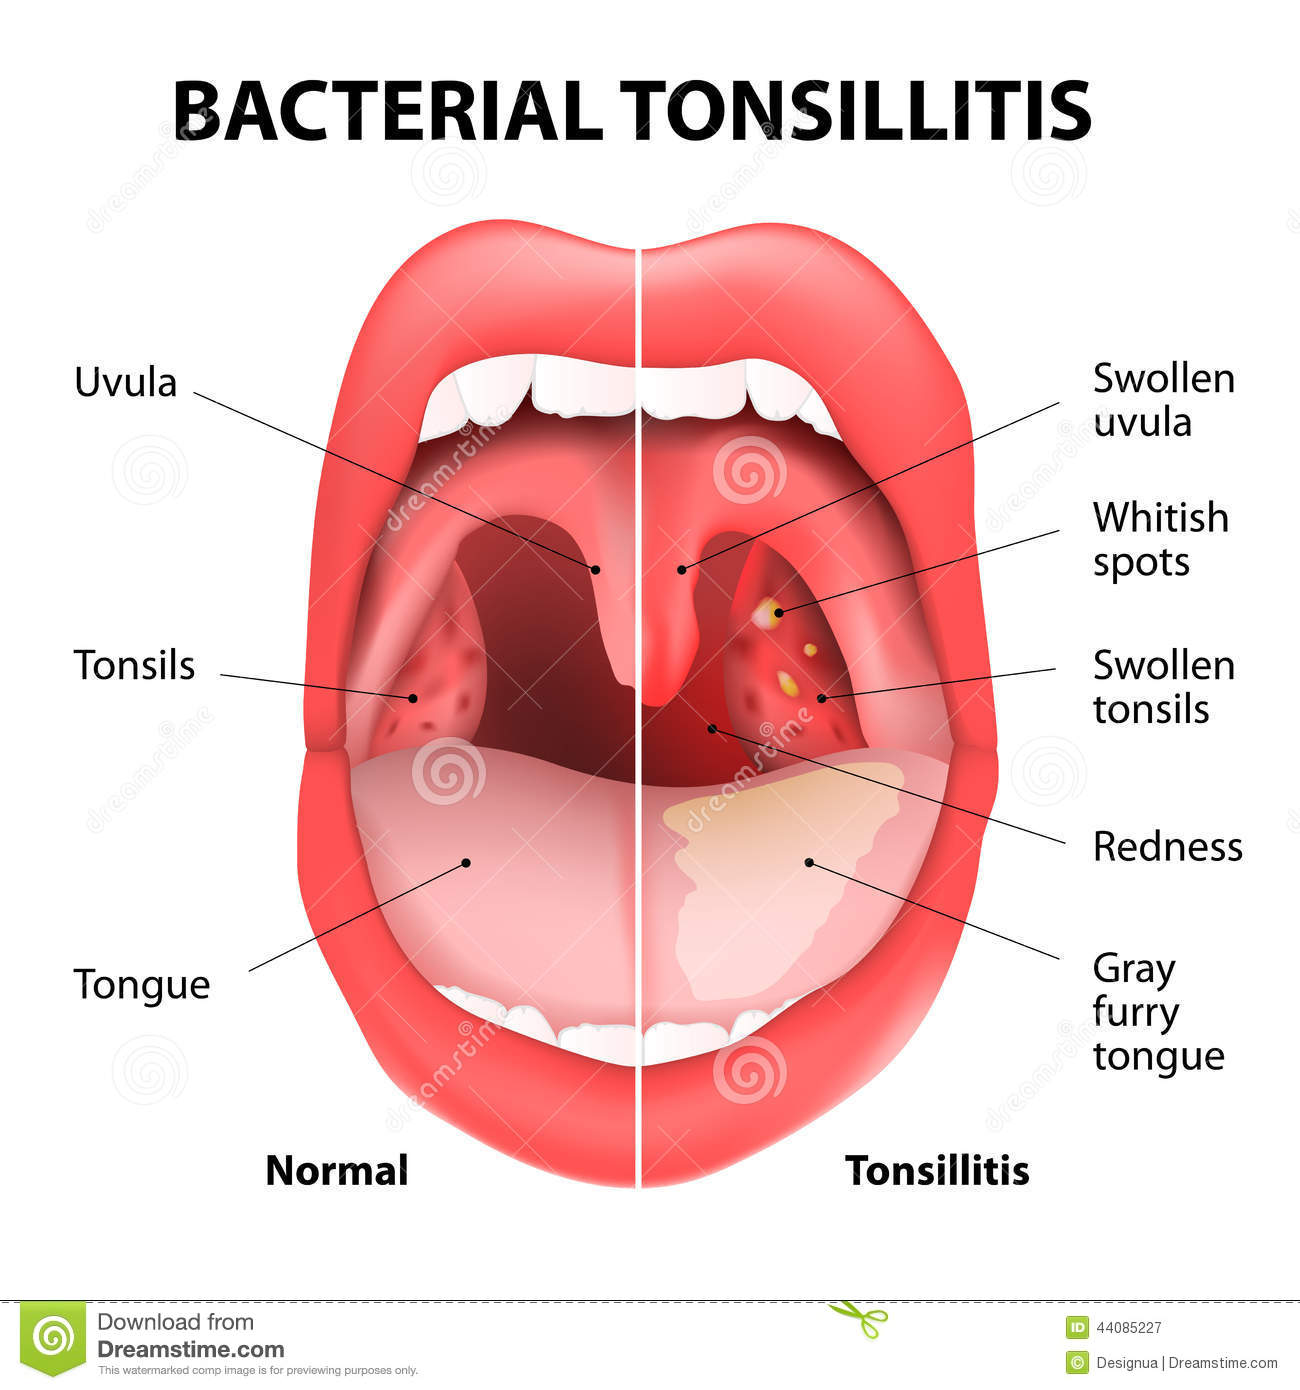 Tonsillitis bacterial stock vector. Illustration of barr - 44085227